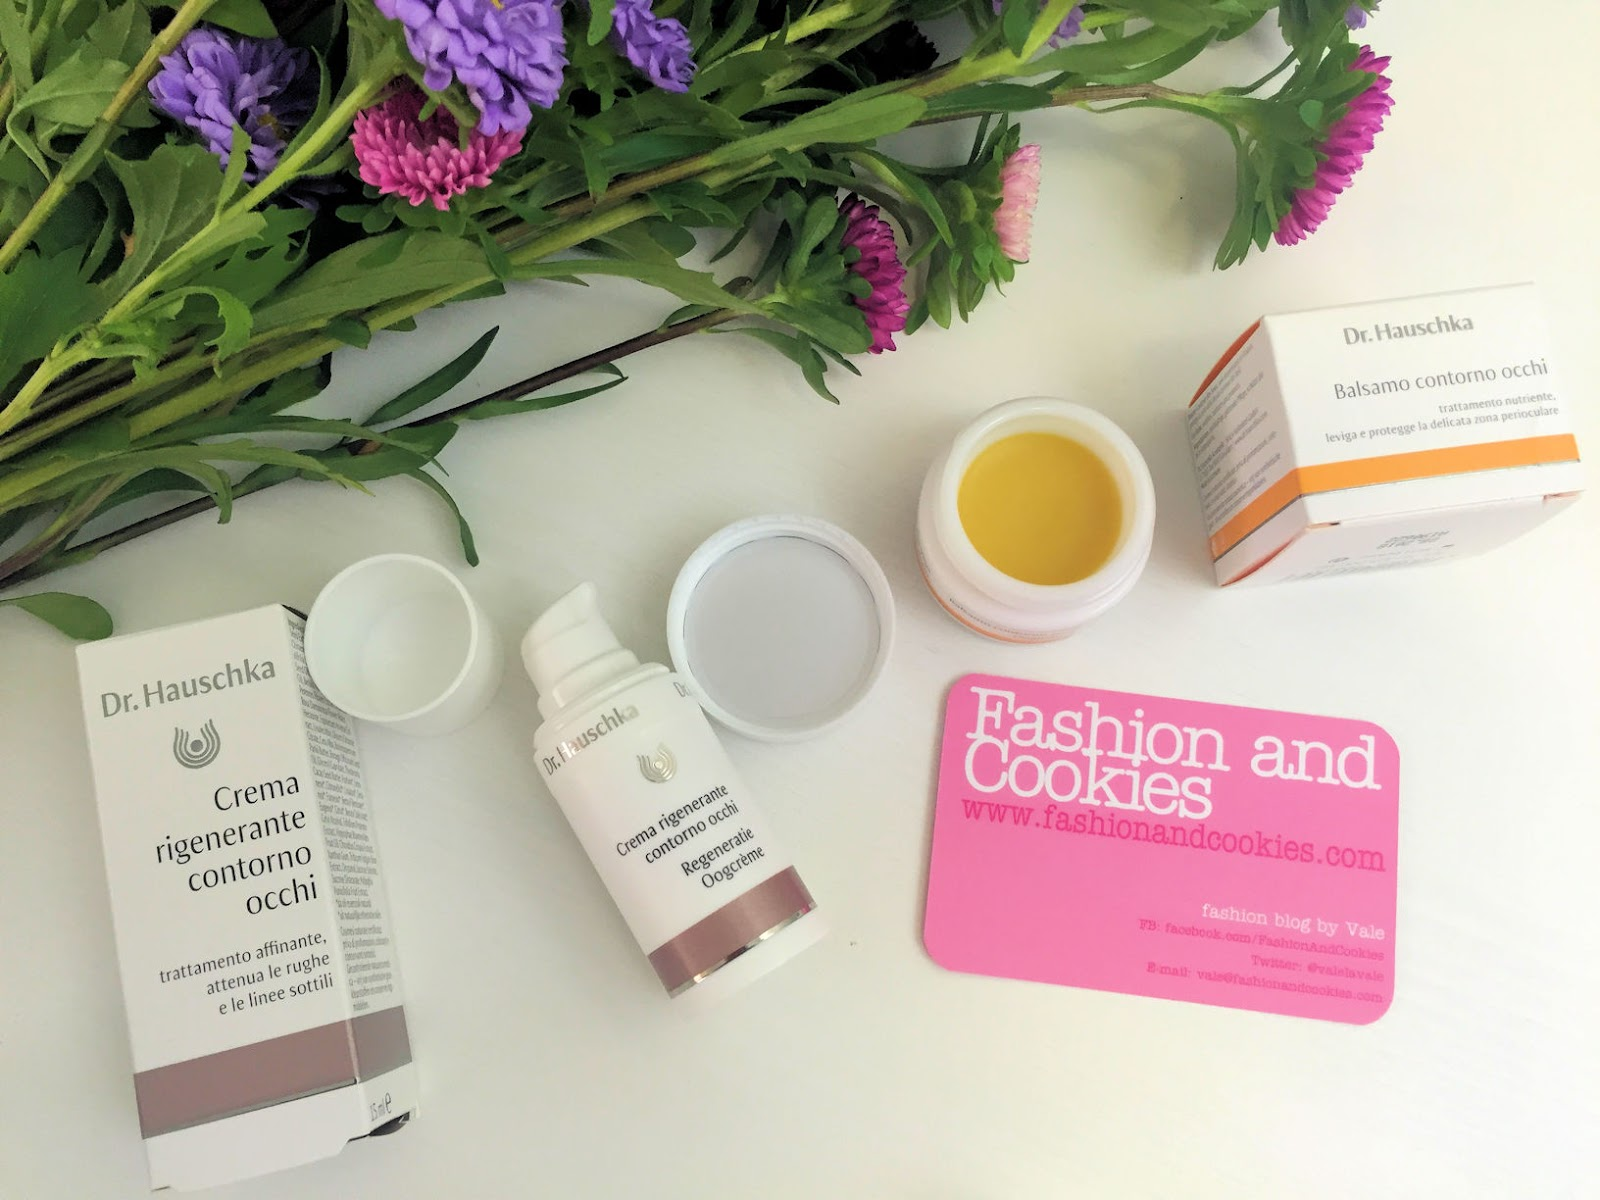 Dr Hauschka Crema rigenerante contorno occhi e balsamo occhi su Fashion and Cookies beauty blog, beauty blogger